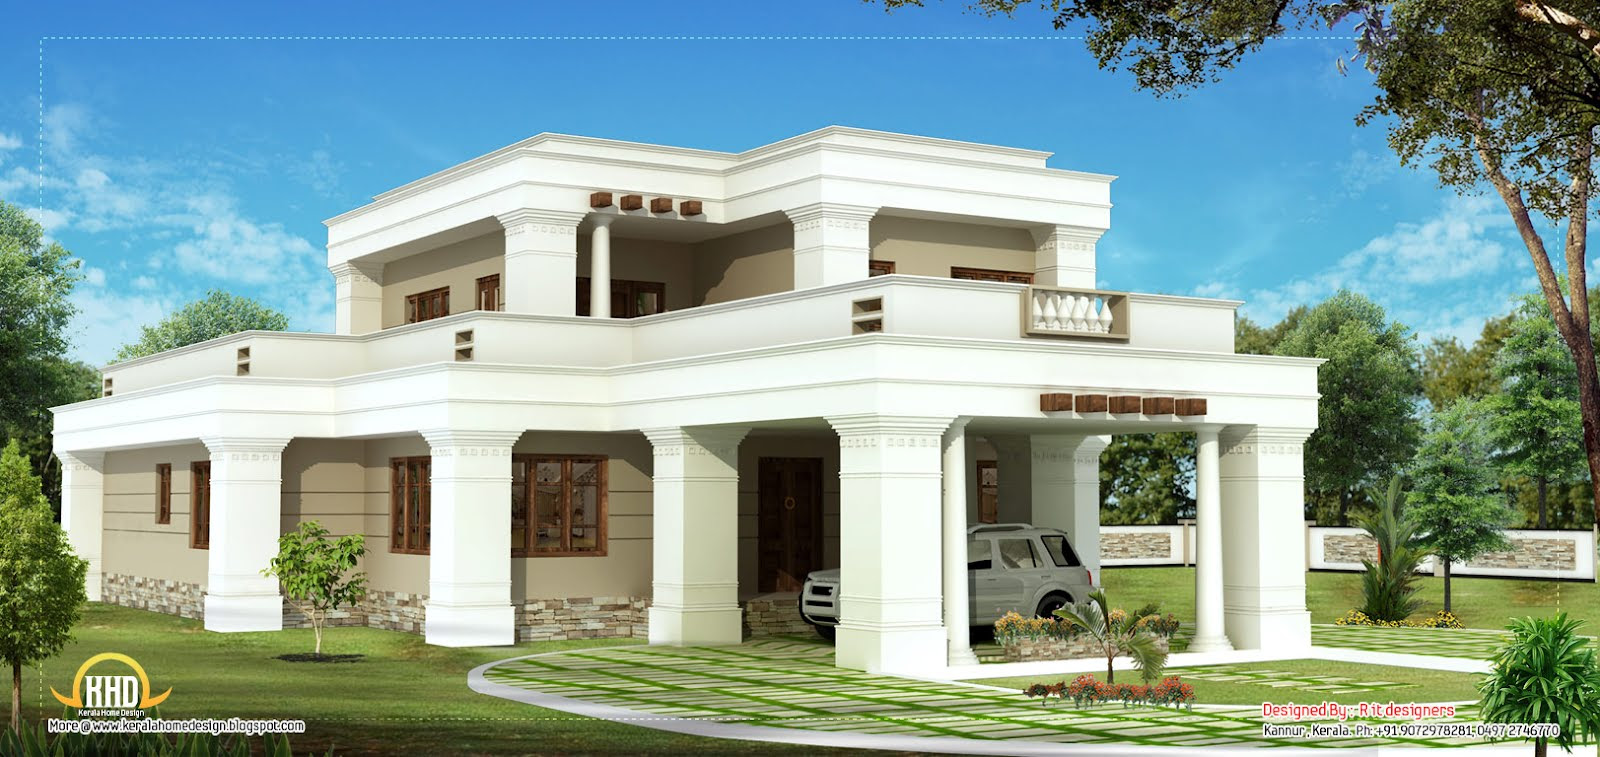 Double Story House Designs